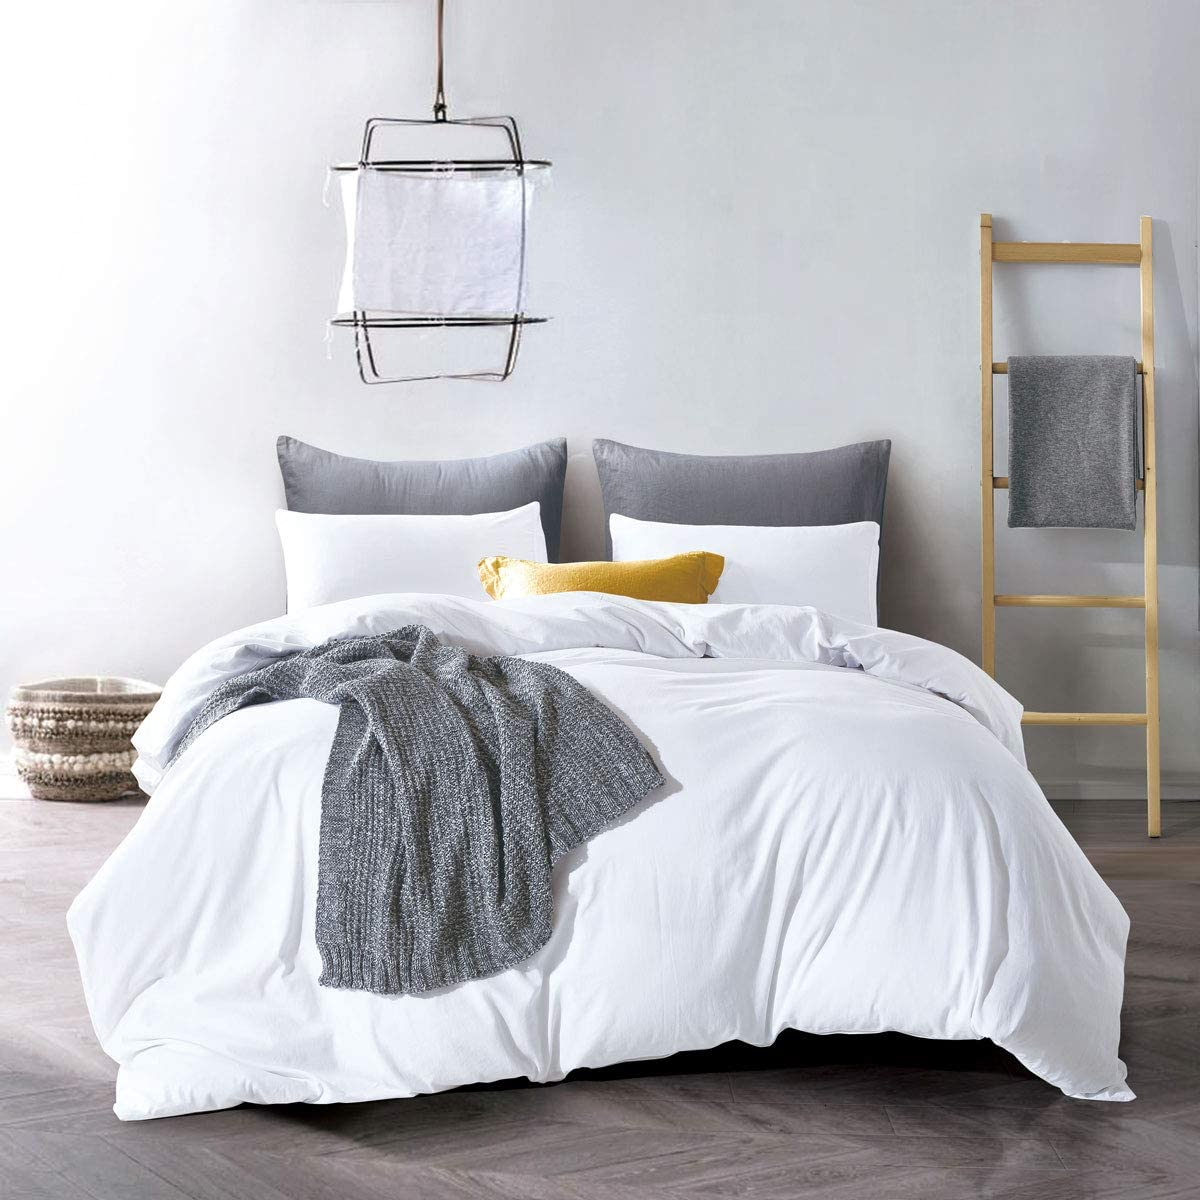 ATsense Duvet Cover, Bedding Duvet Cover Set, 100% Washed Cotton, 3-Piece, Ultra Soft and Easy Care, Simple Style Bedding Set (California King, White 7006-4)